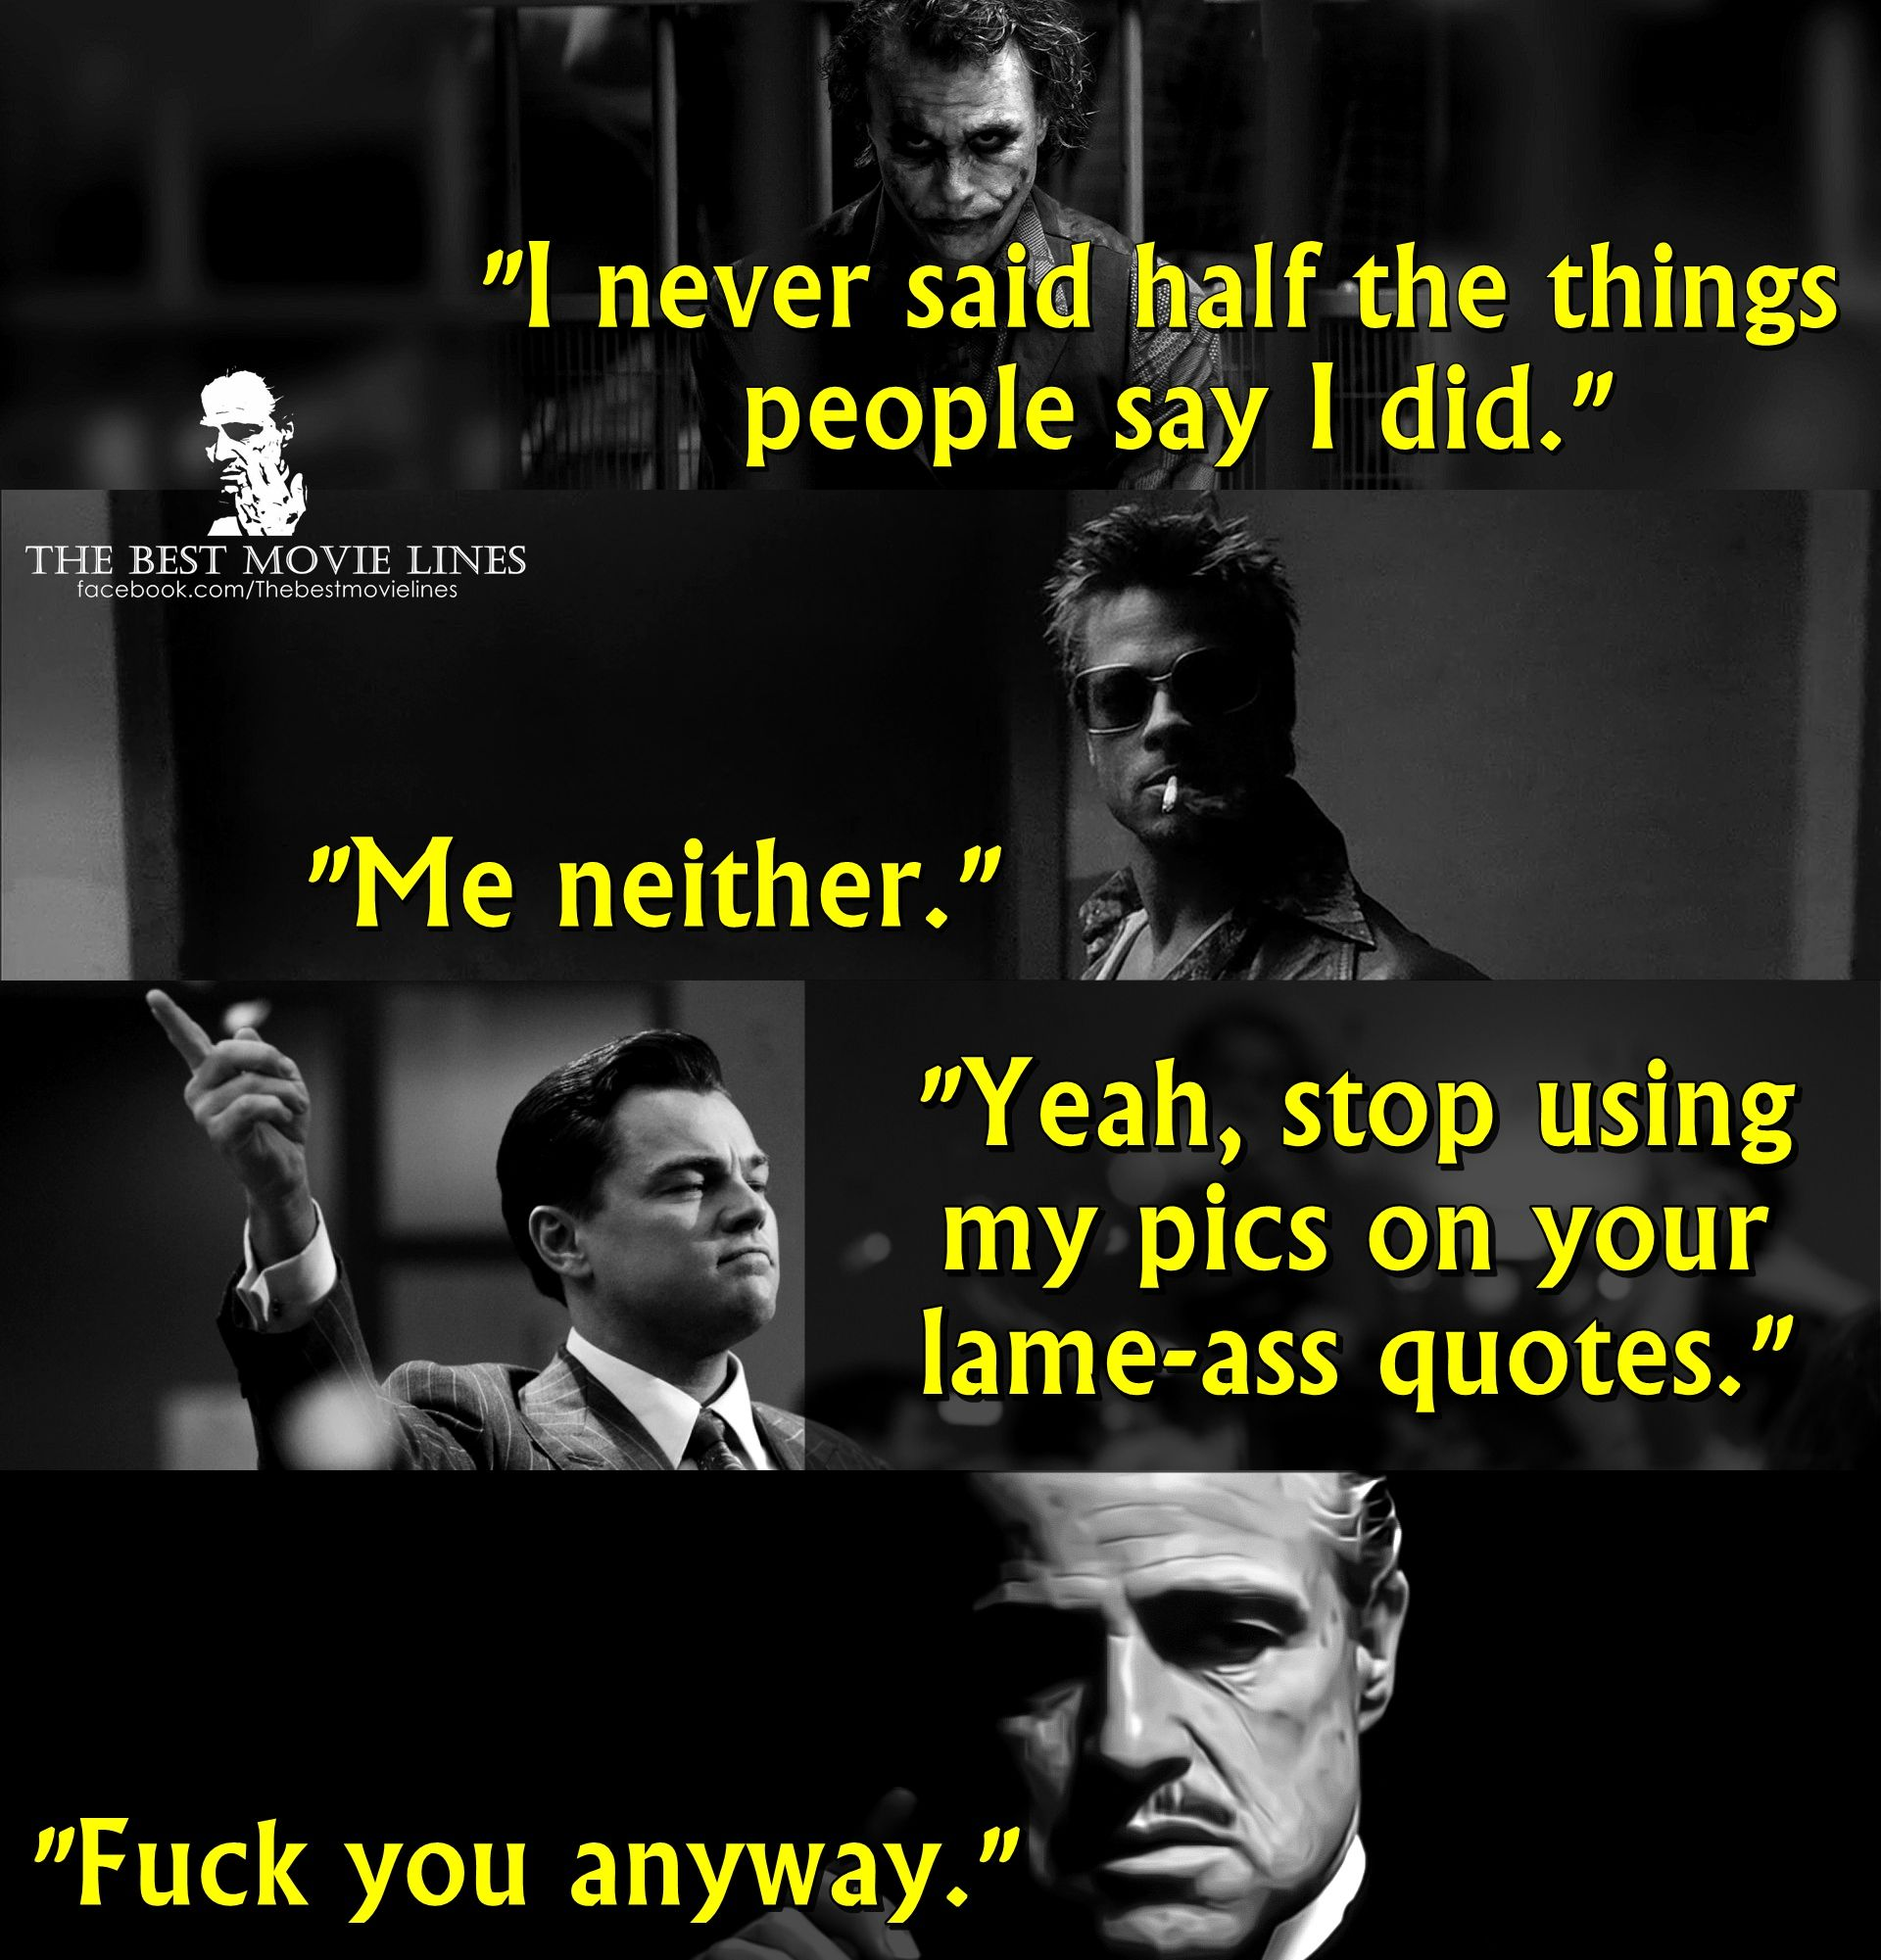 Internet Quotes Them Fake Internet Quotesp  The Best Movie Lines  Pinterest